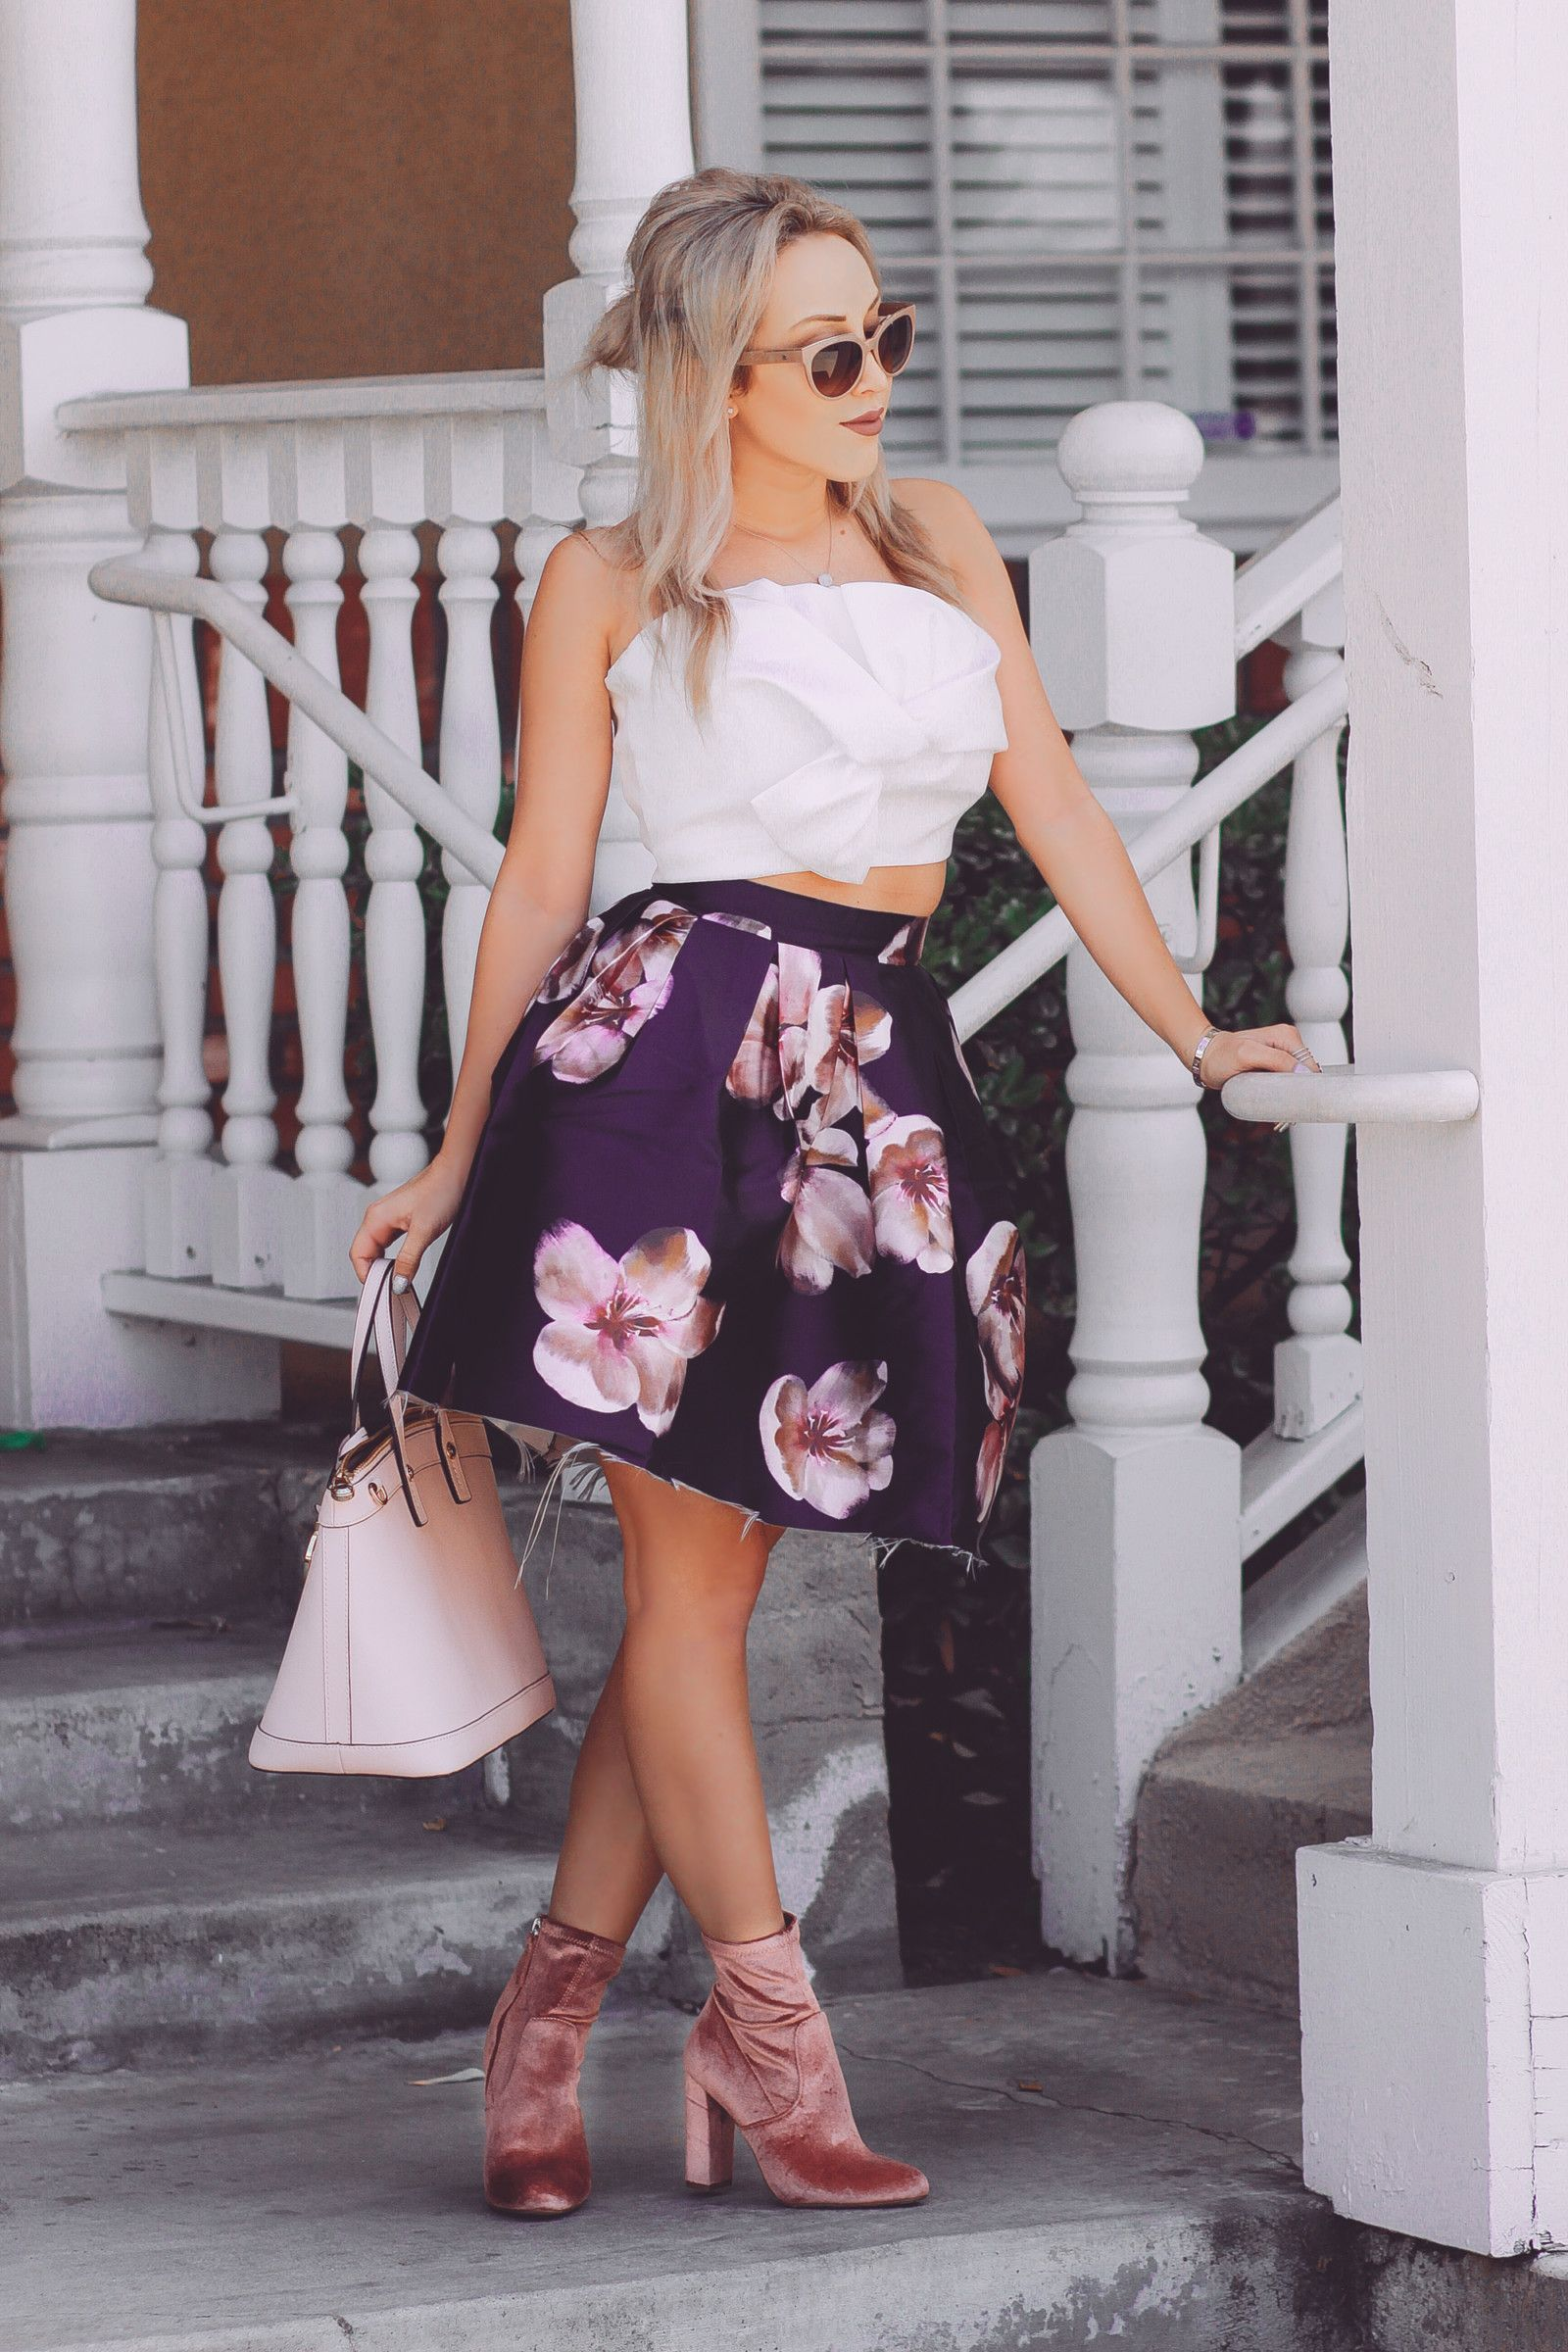 Blondie in the City | Pink Velvet Steve Madden Boots | Floral Skirt |  Balenciaga Sunglasses